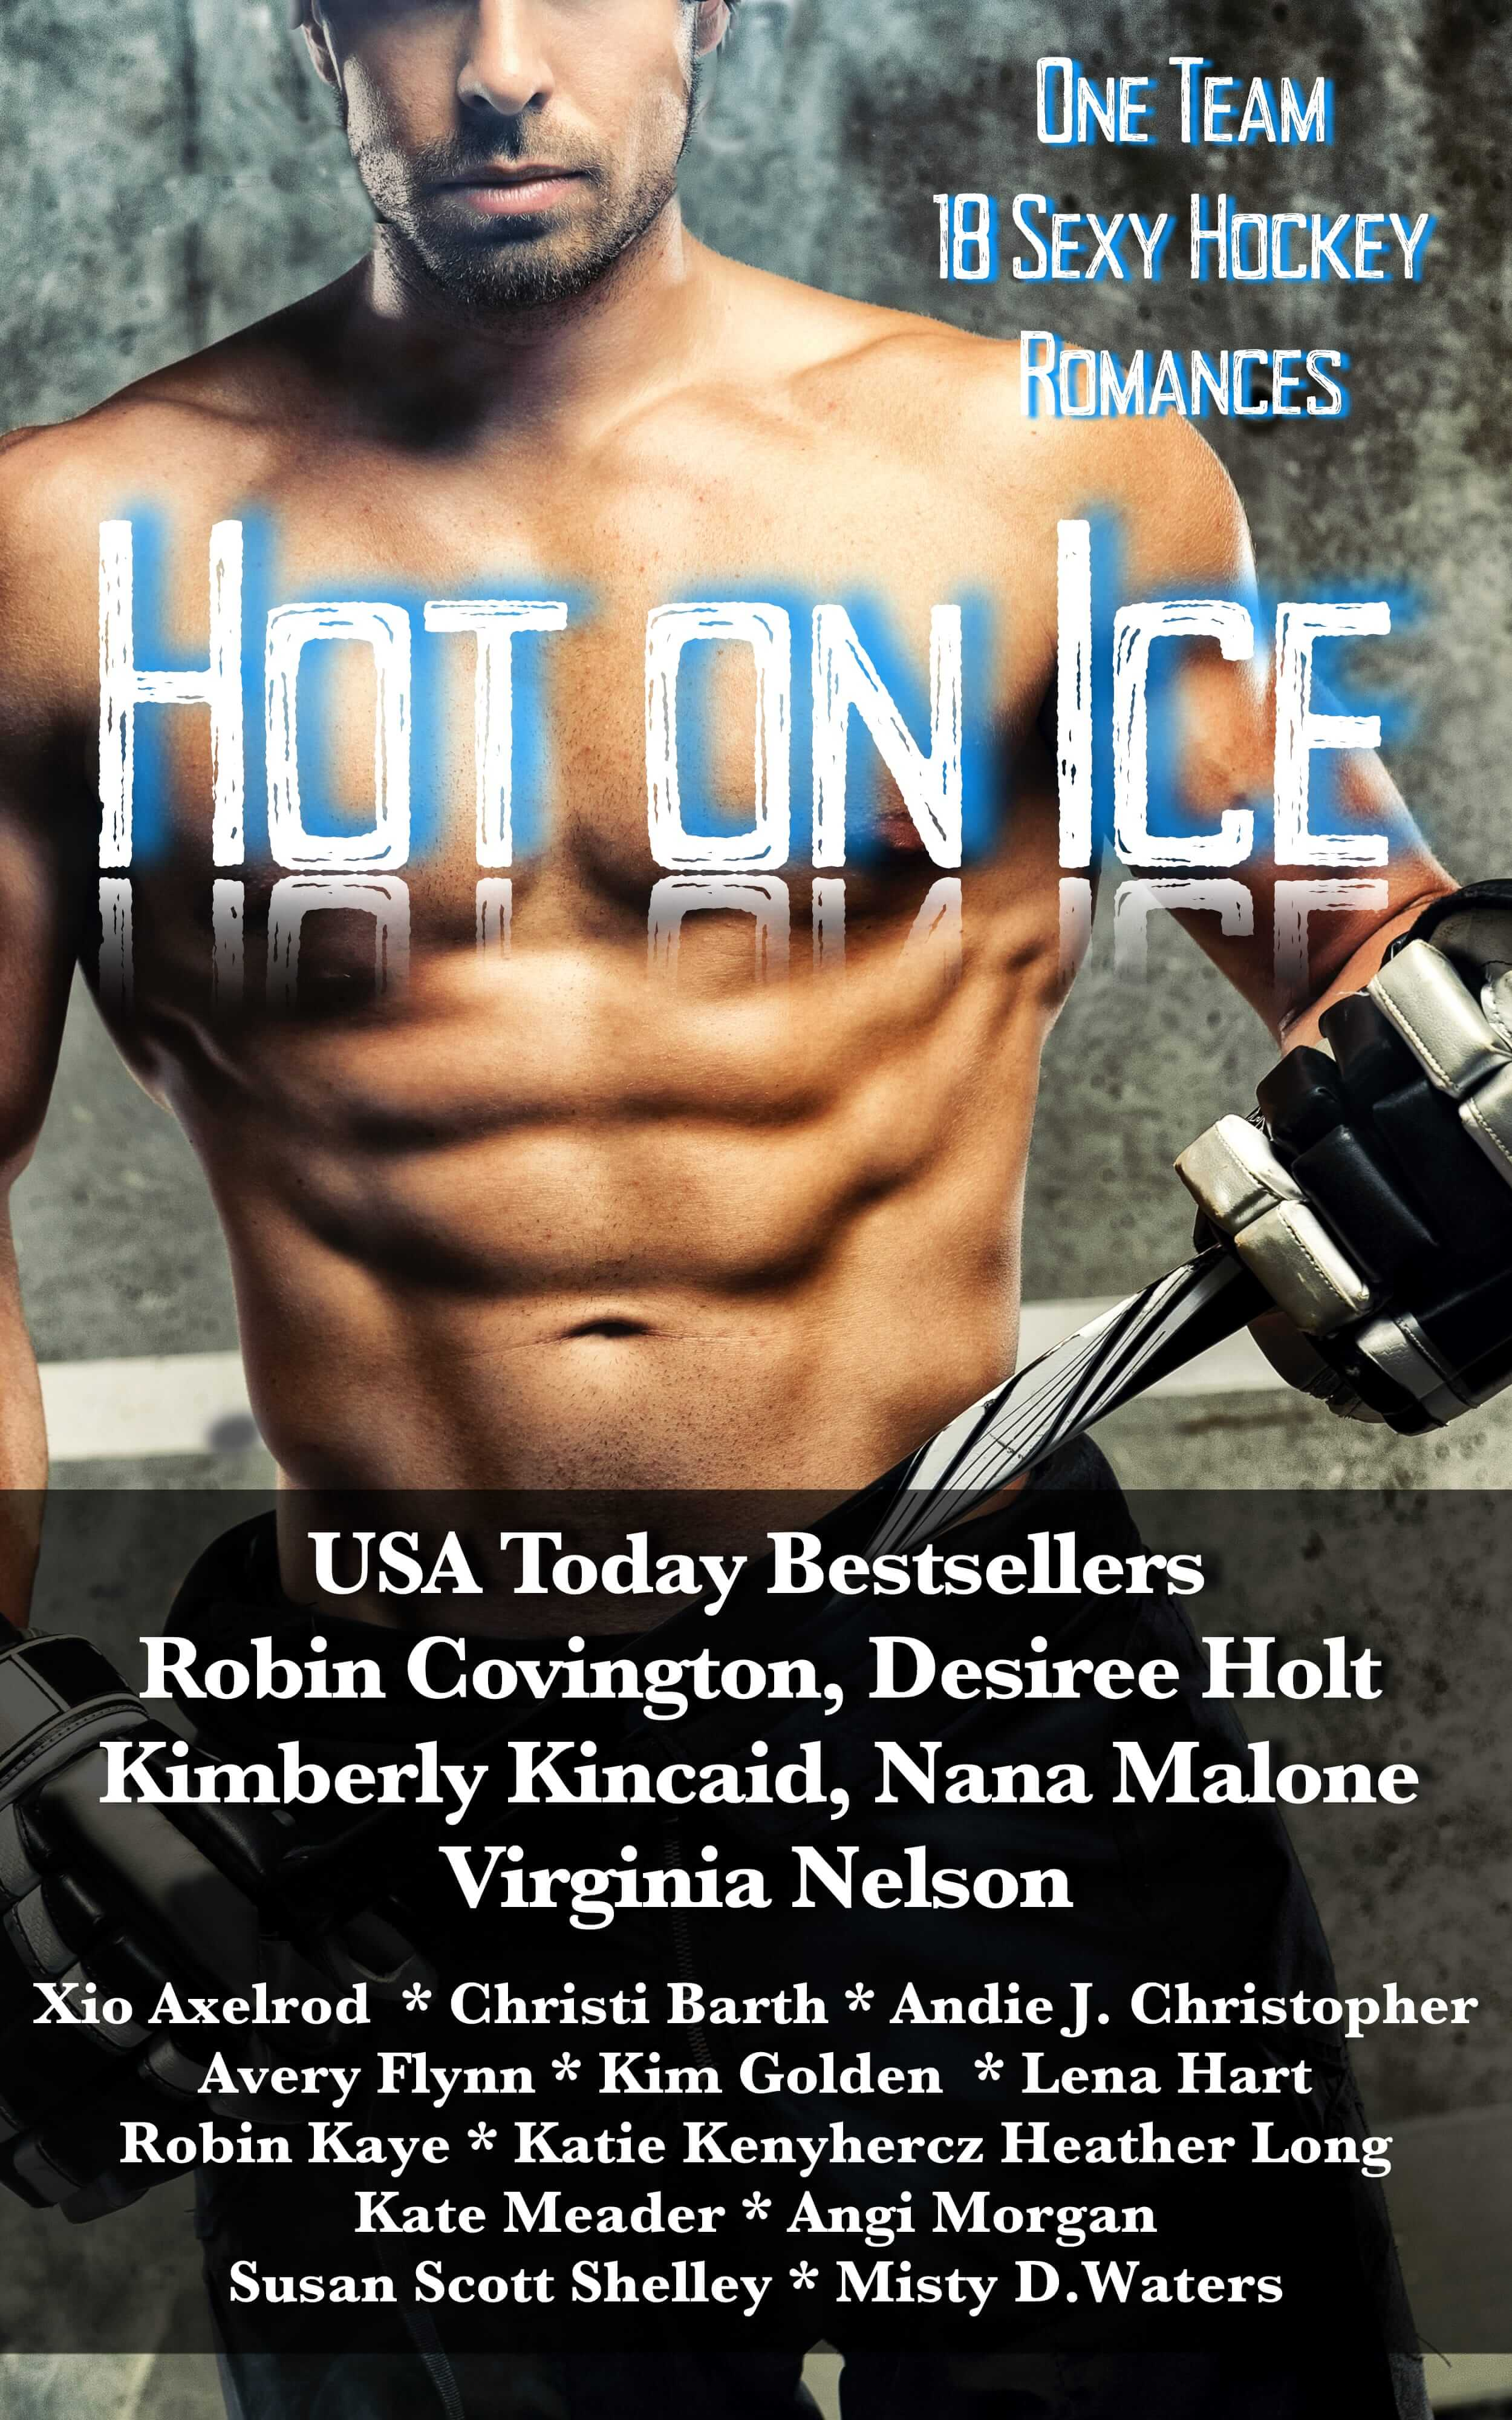 Hot on Ice Anthology: Review